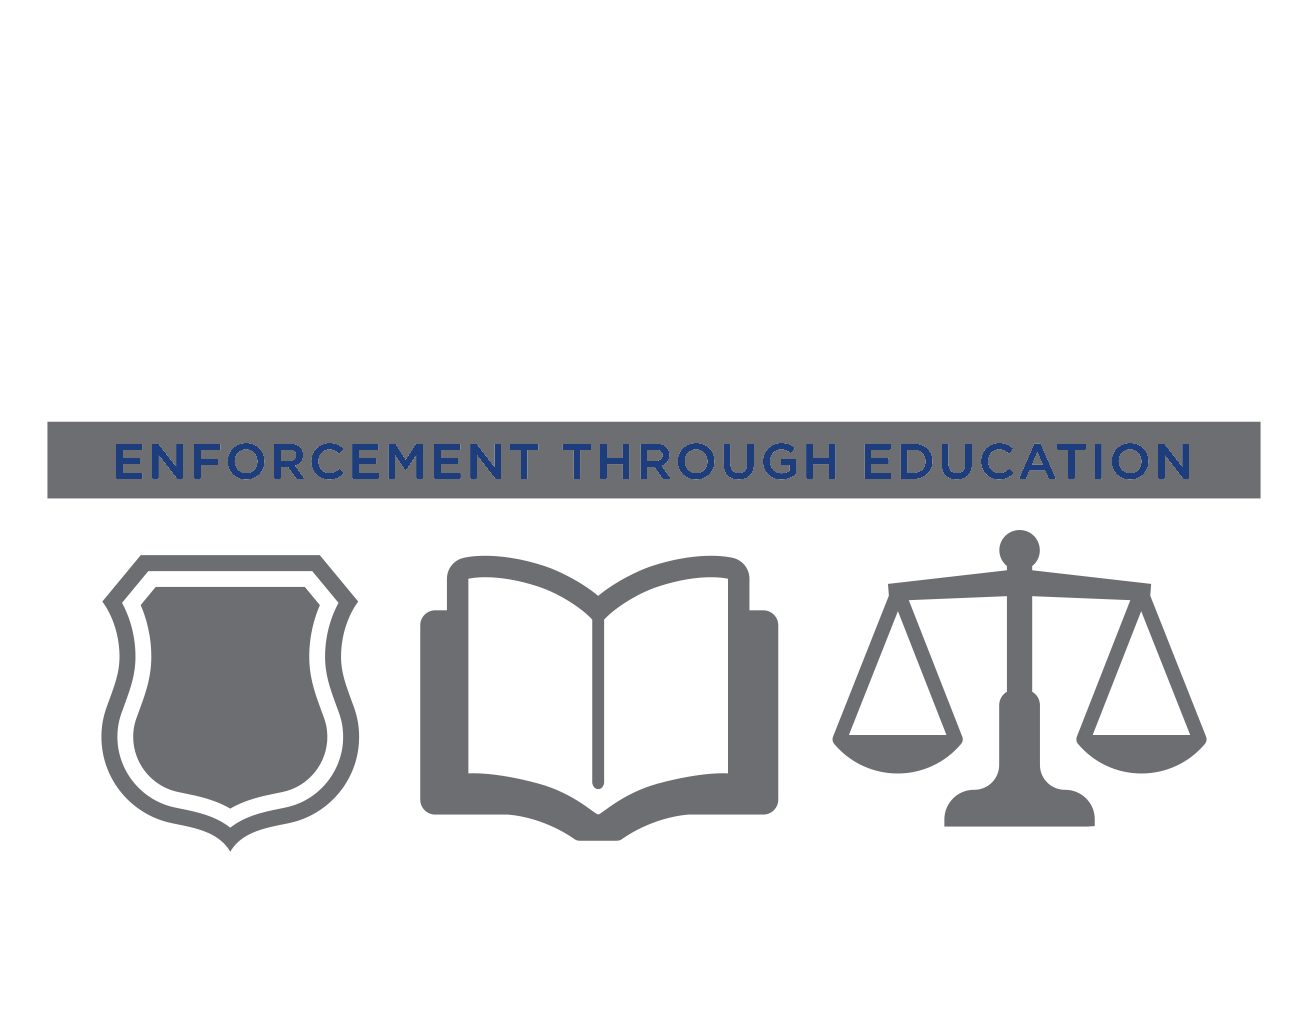 The IACC Foundation